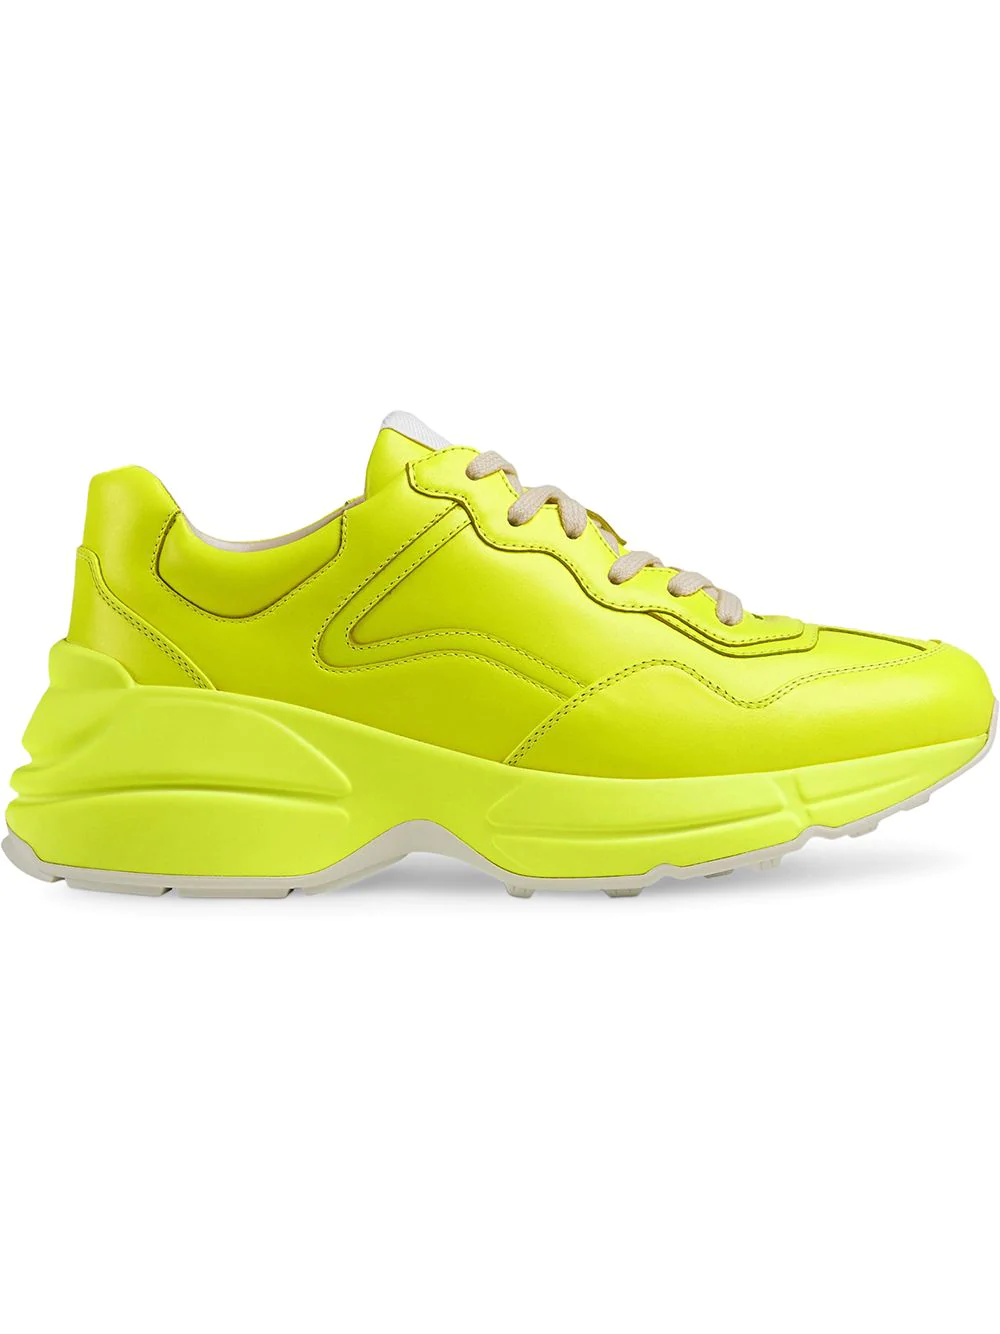 21dc75dfa01 Gucci Men s Rhyton Fluorescent Leather Sneakers In Yellow